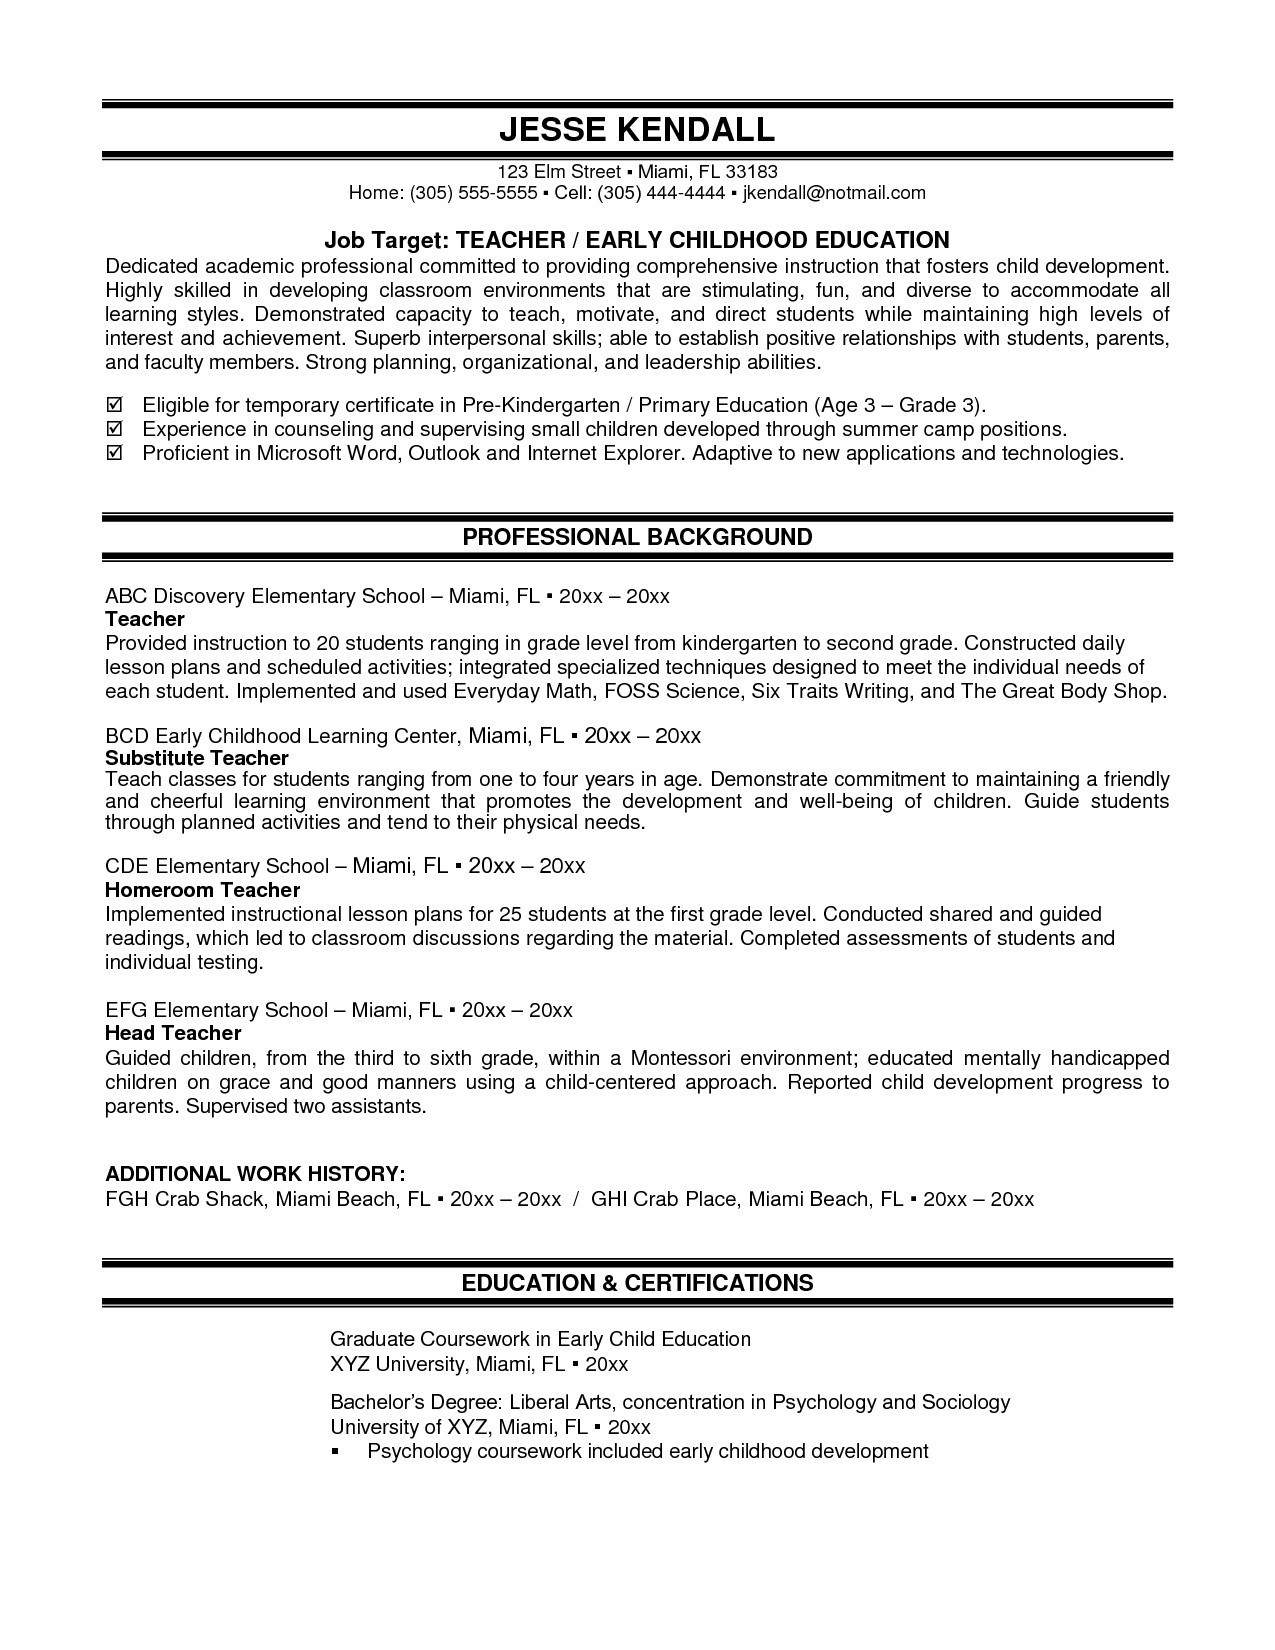 Resume Example For High School Student With Experience Alexa